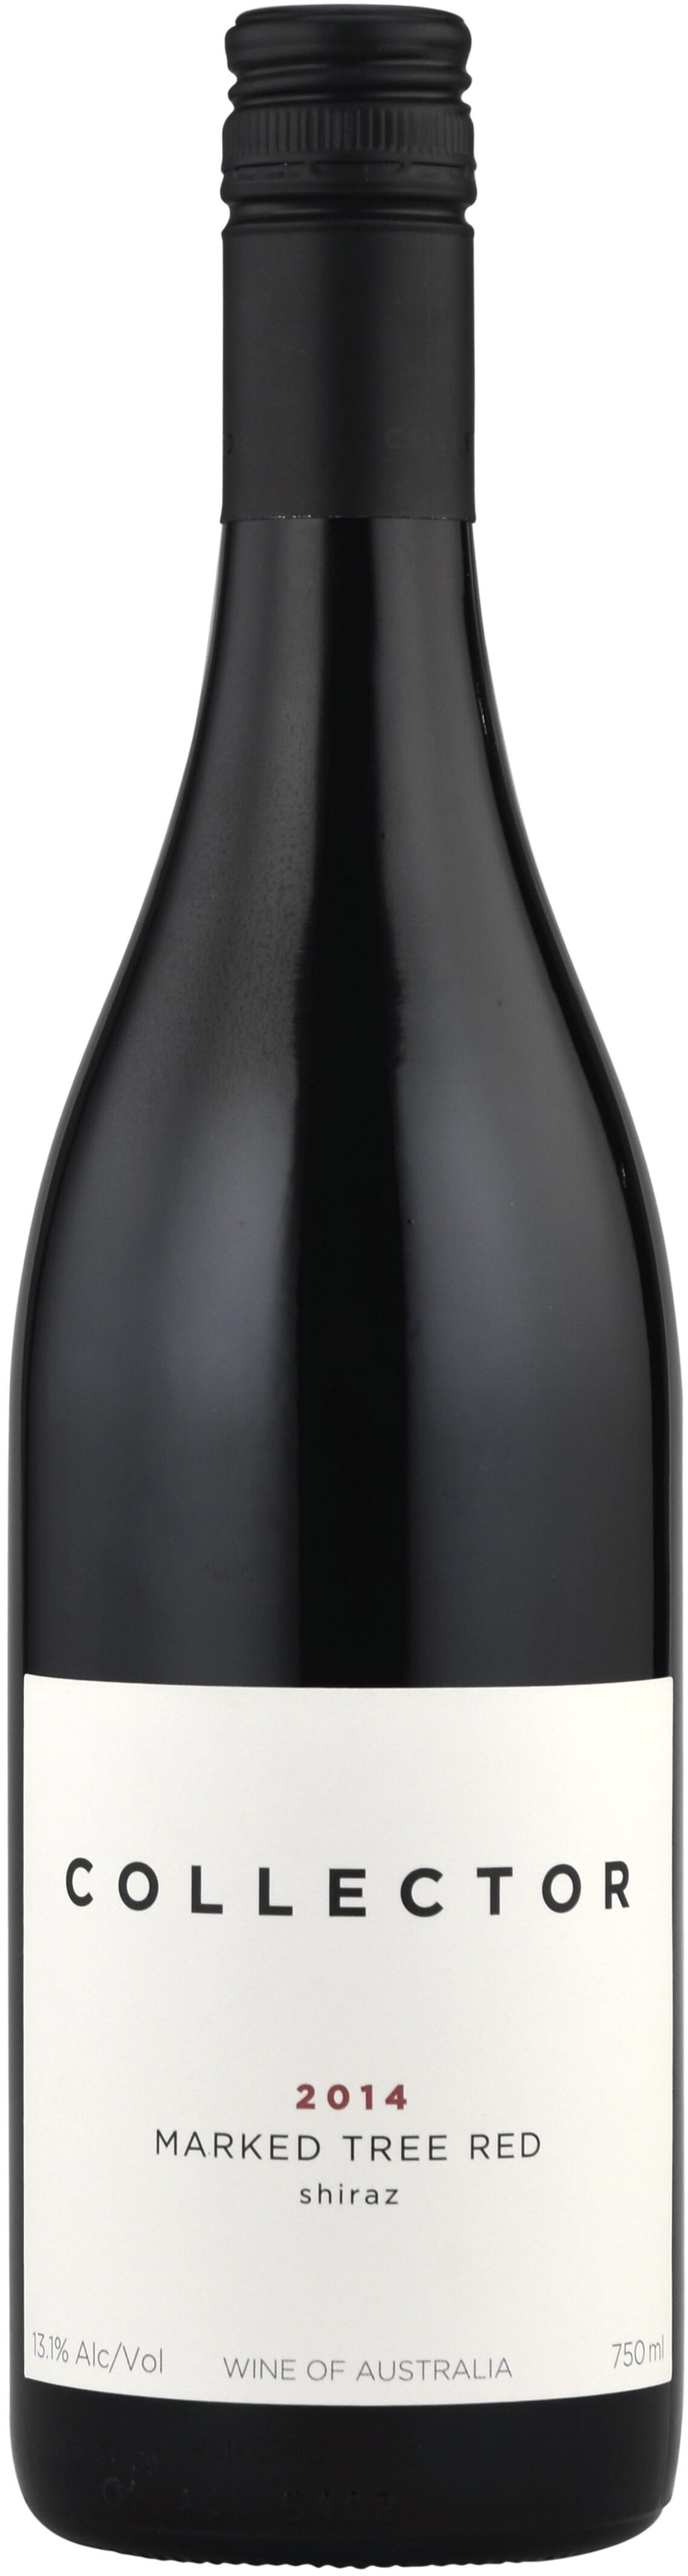 Collector Marked Tree Red Shiraz 2014 - Network Wines